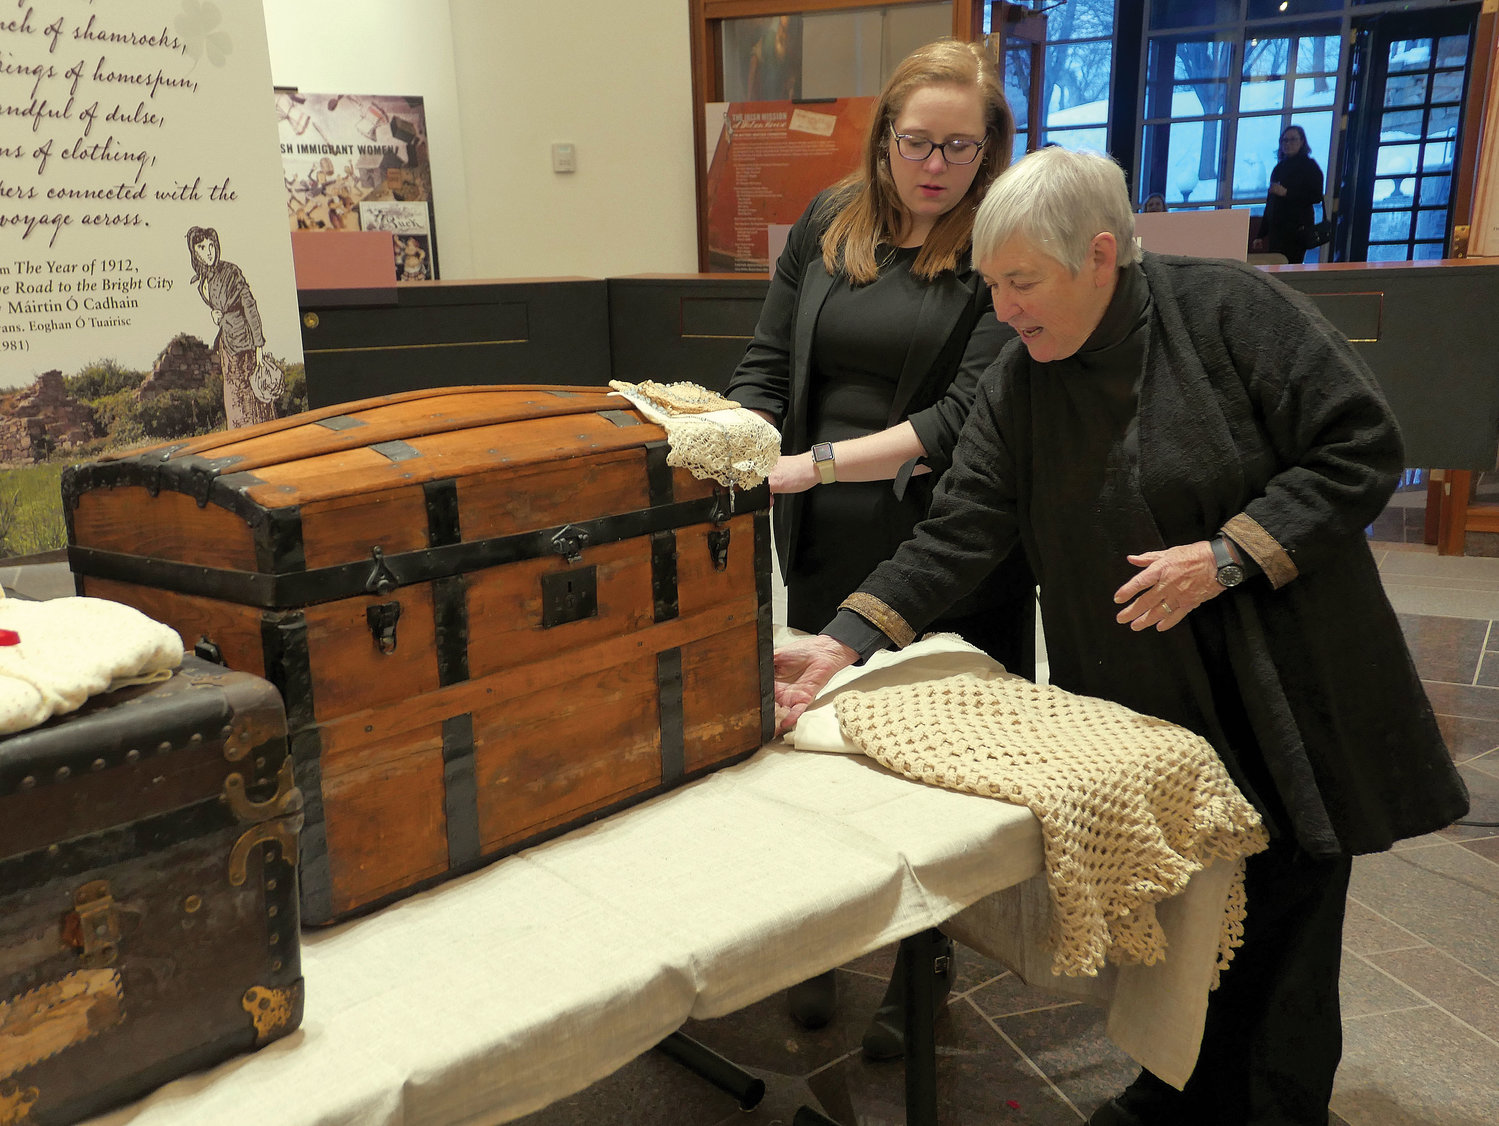 A photo exhibit of the Irish Mission at Watson House opened March 7 in the Archives Building at St. Joseph's Seminary in Dunwoodie. Dr. Maureen Murphy, featured speaker at the exhibit opening touches a trunk used by her paternal grandmother, Martha Thompson, when she emigrated from Ireland in 1900. With Dr. Murphy is Kate Feighery, archdiocesan archivist.